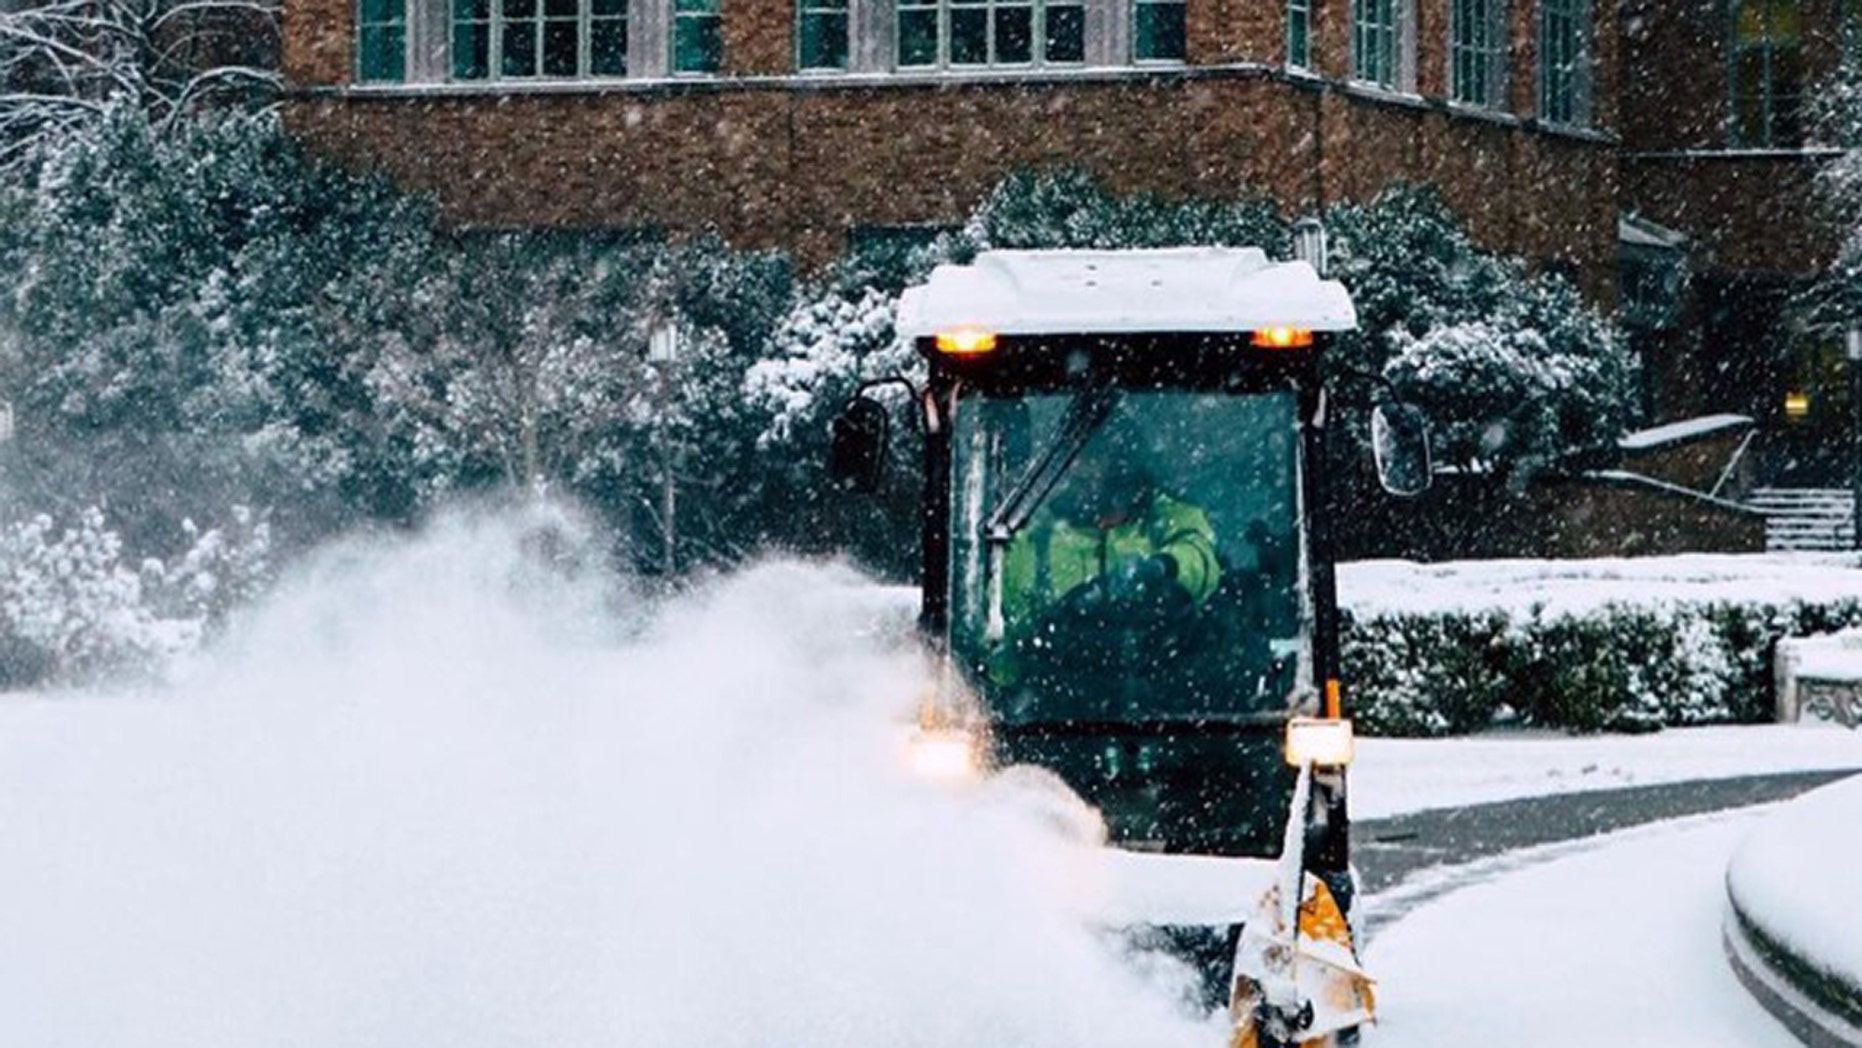 A plow is seen on the University of Washington campus after a snow storm.